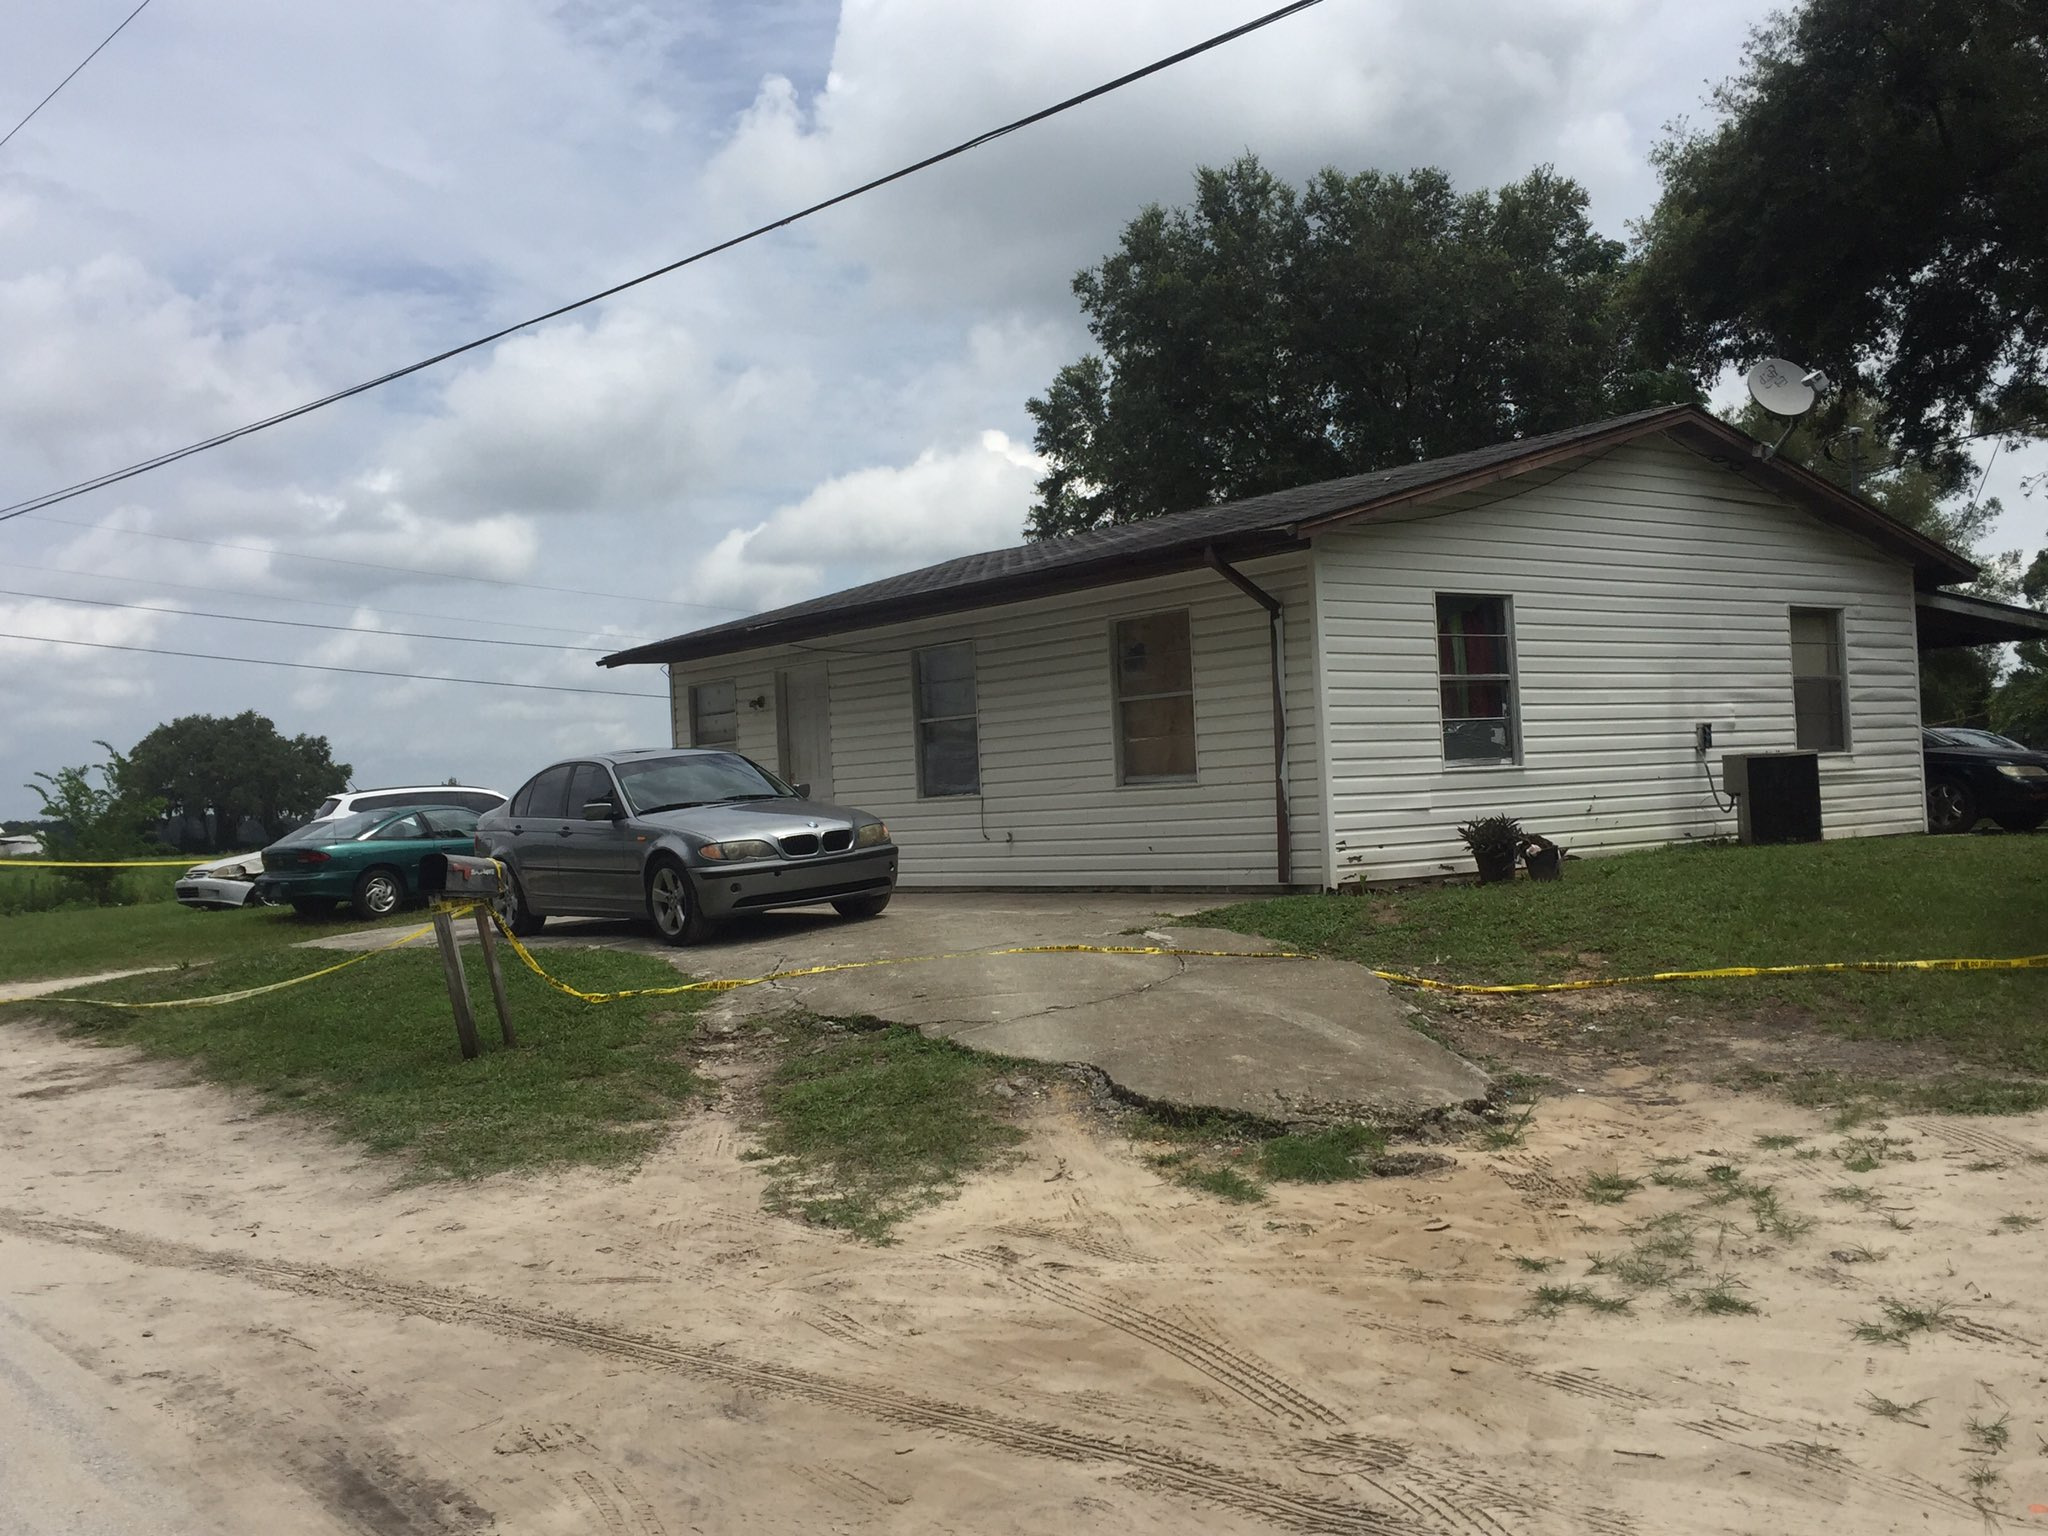 Two brothers were shot inside this house Friday night. Deputies made two arrests in the case Tuesday.